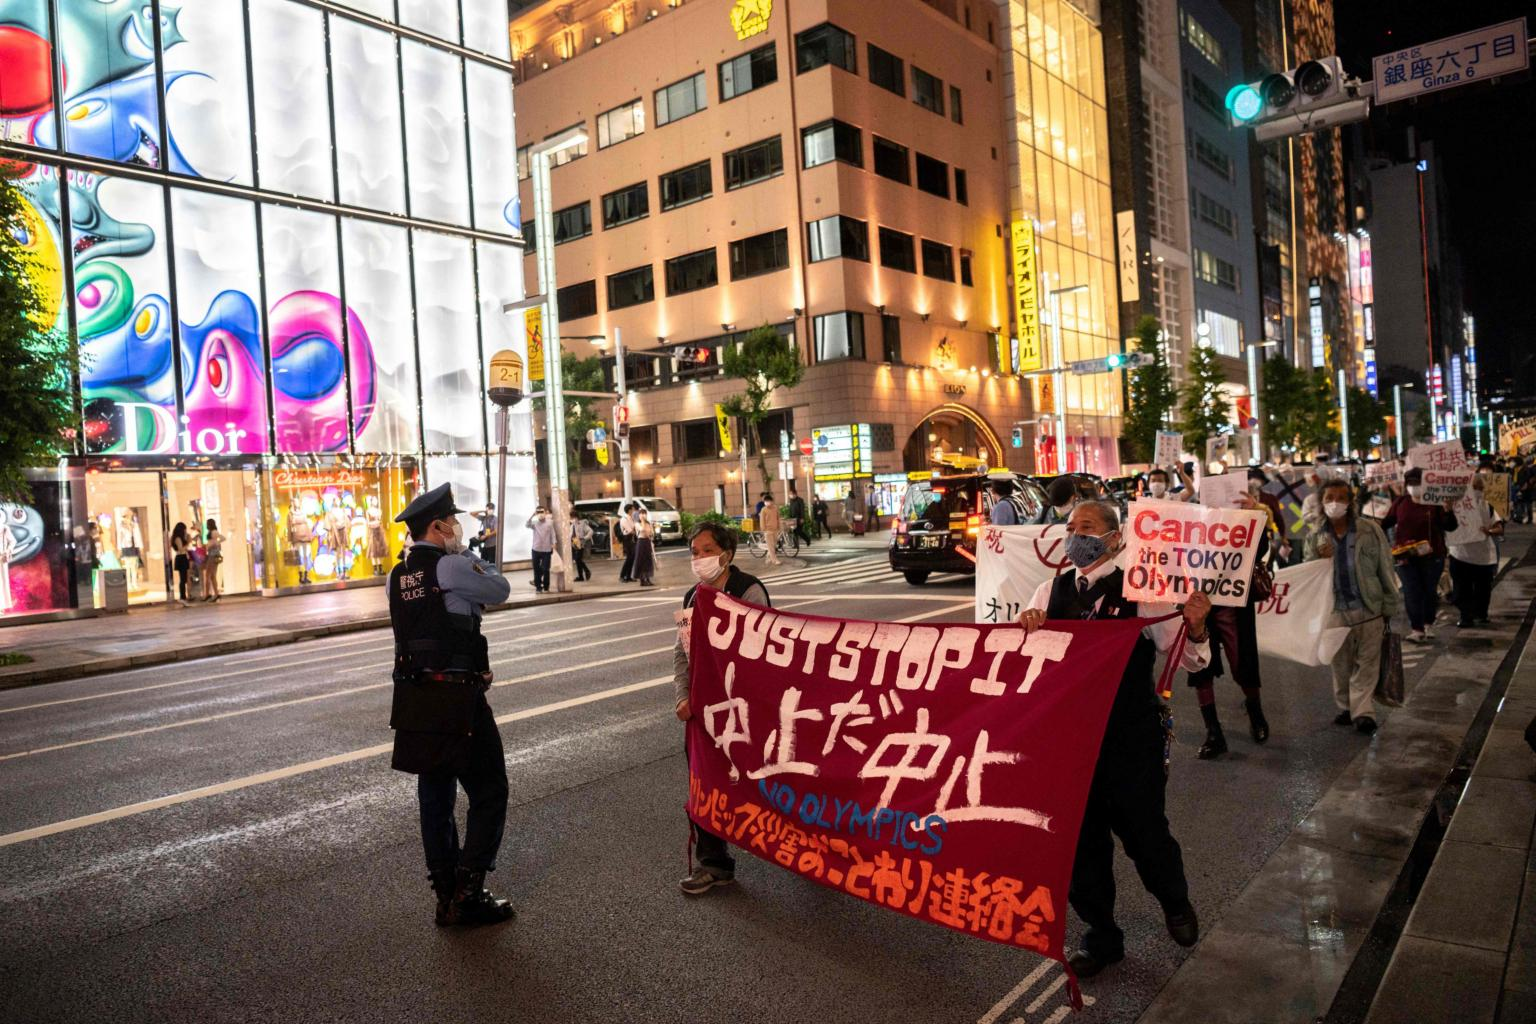 Consequences and Financial Implications of Tokyo 2020 Cancellation